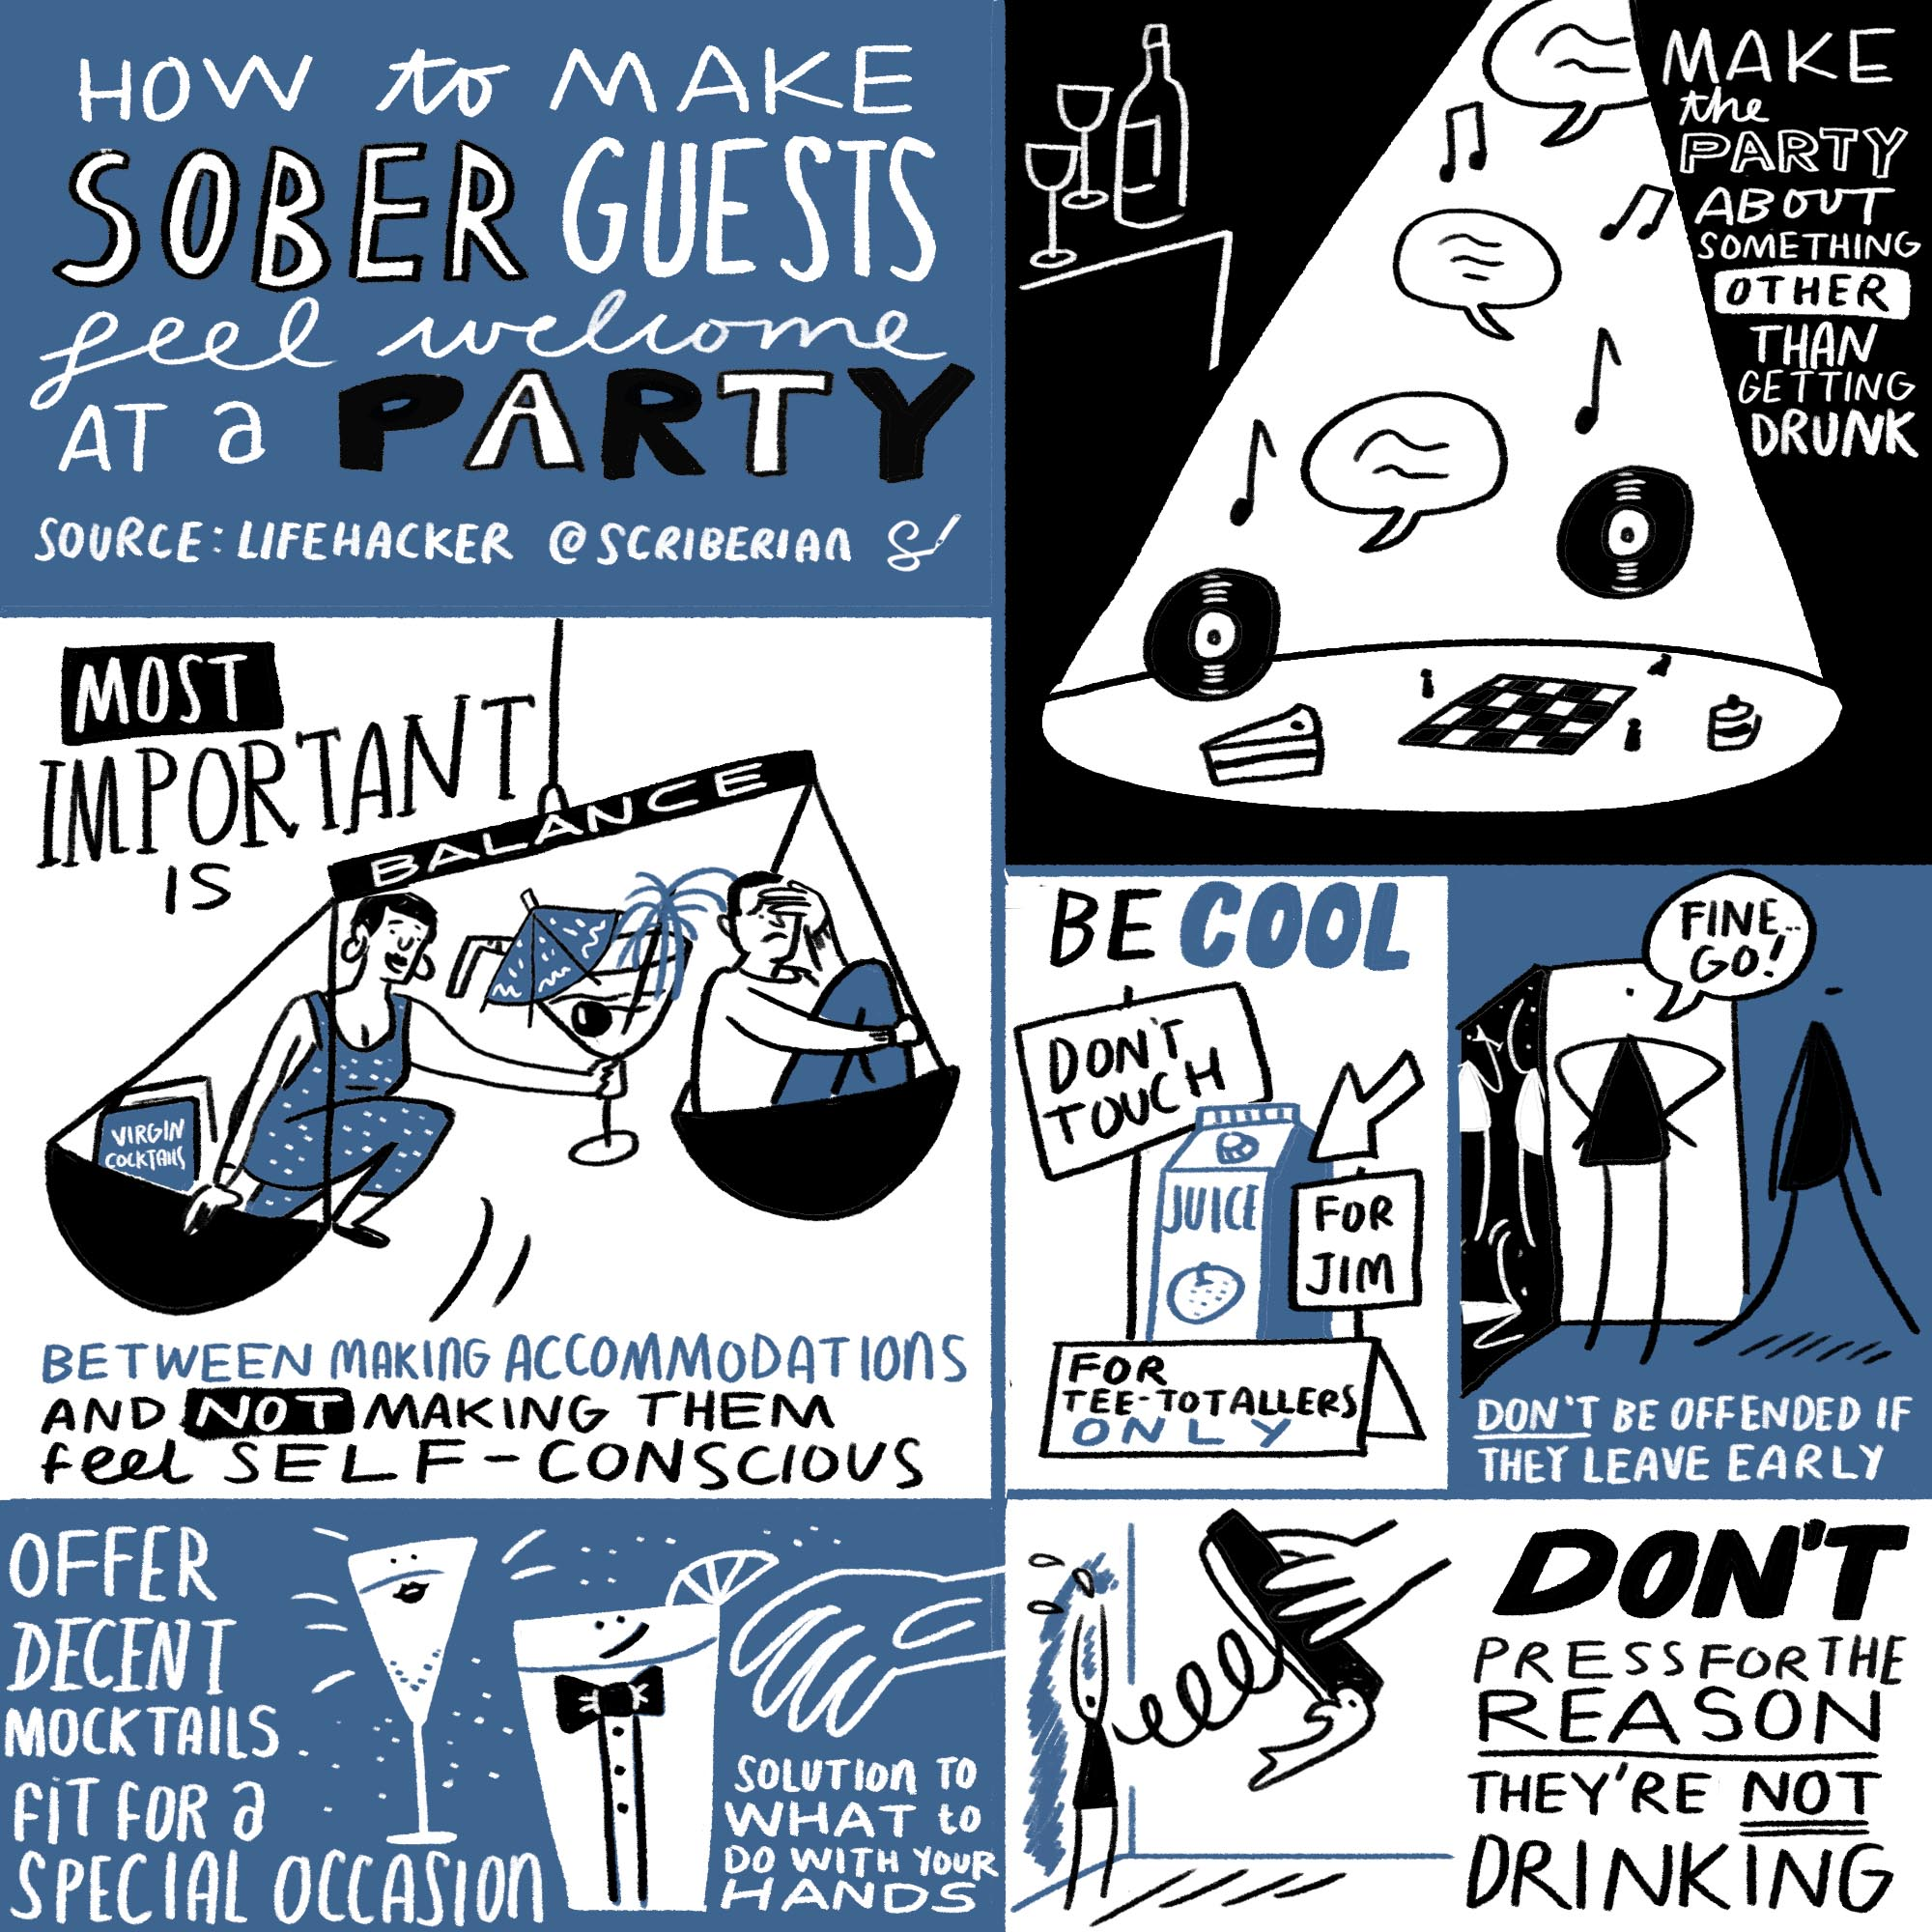 How to make sober guests feel welcome at a party. Source:  Lifehacker